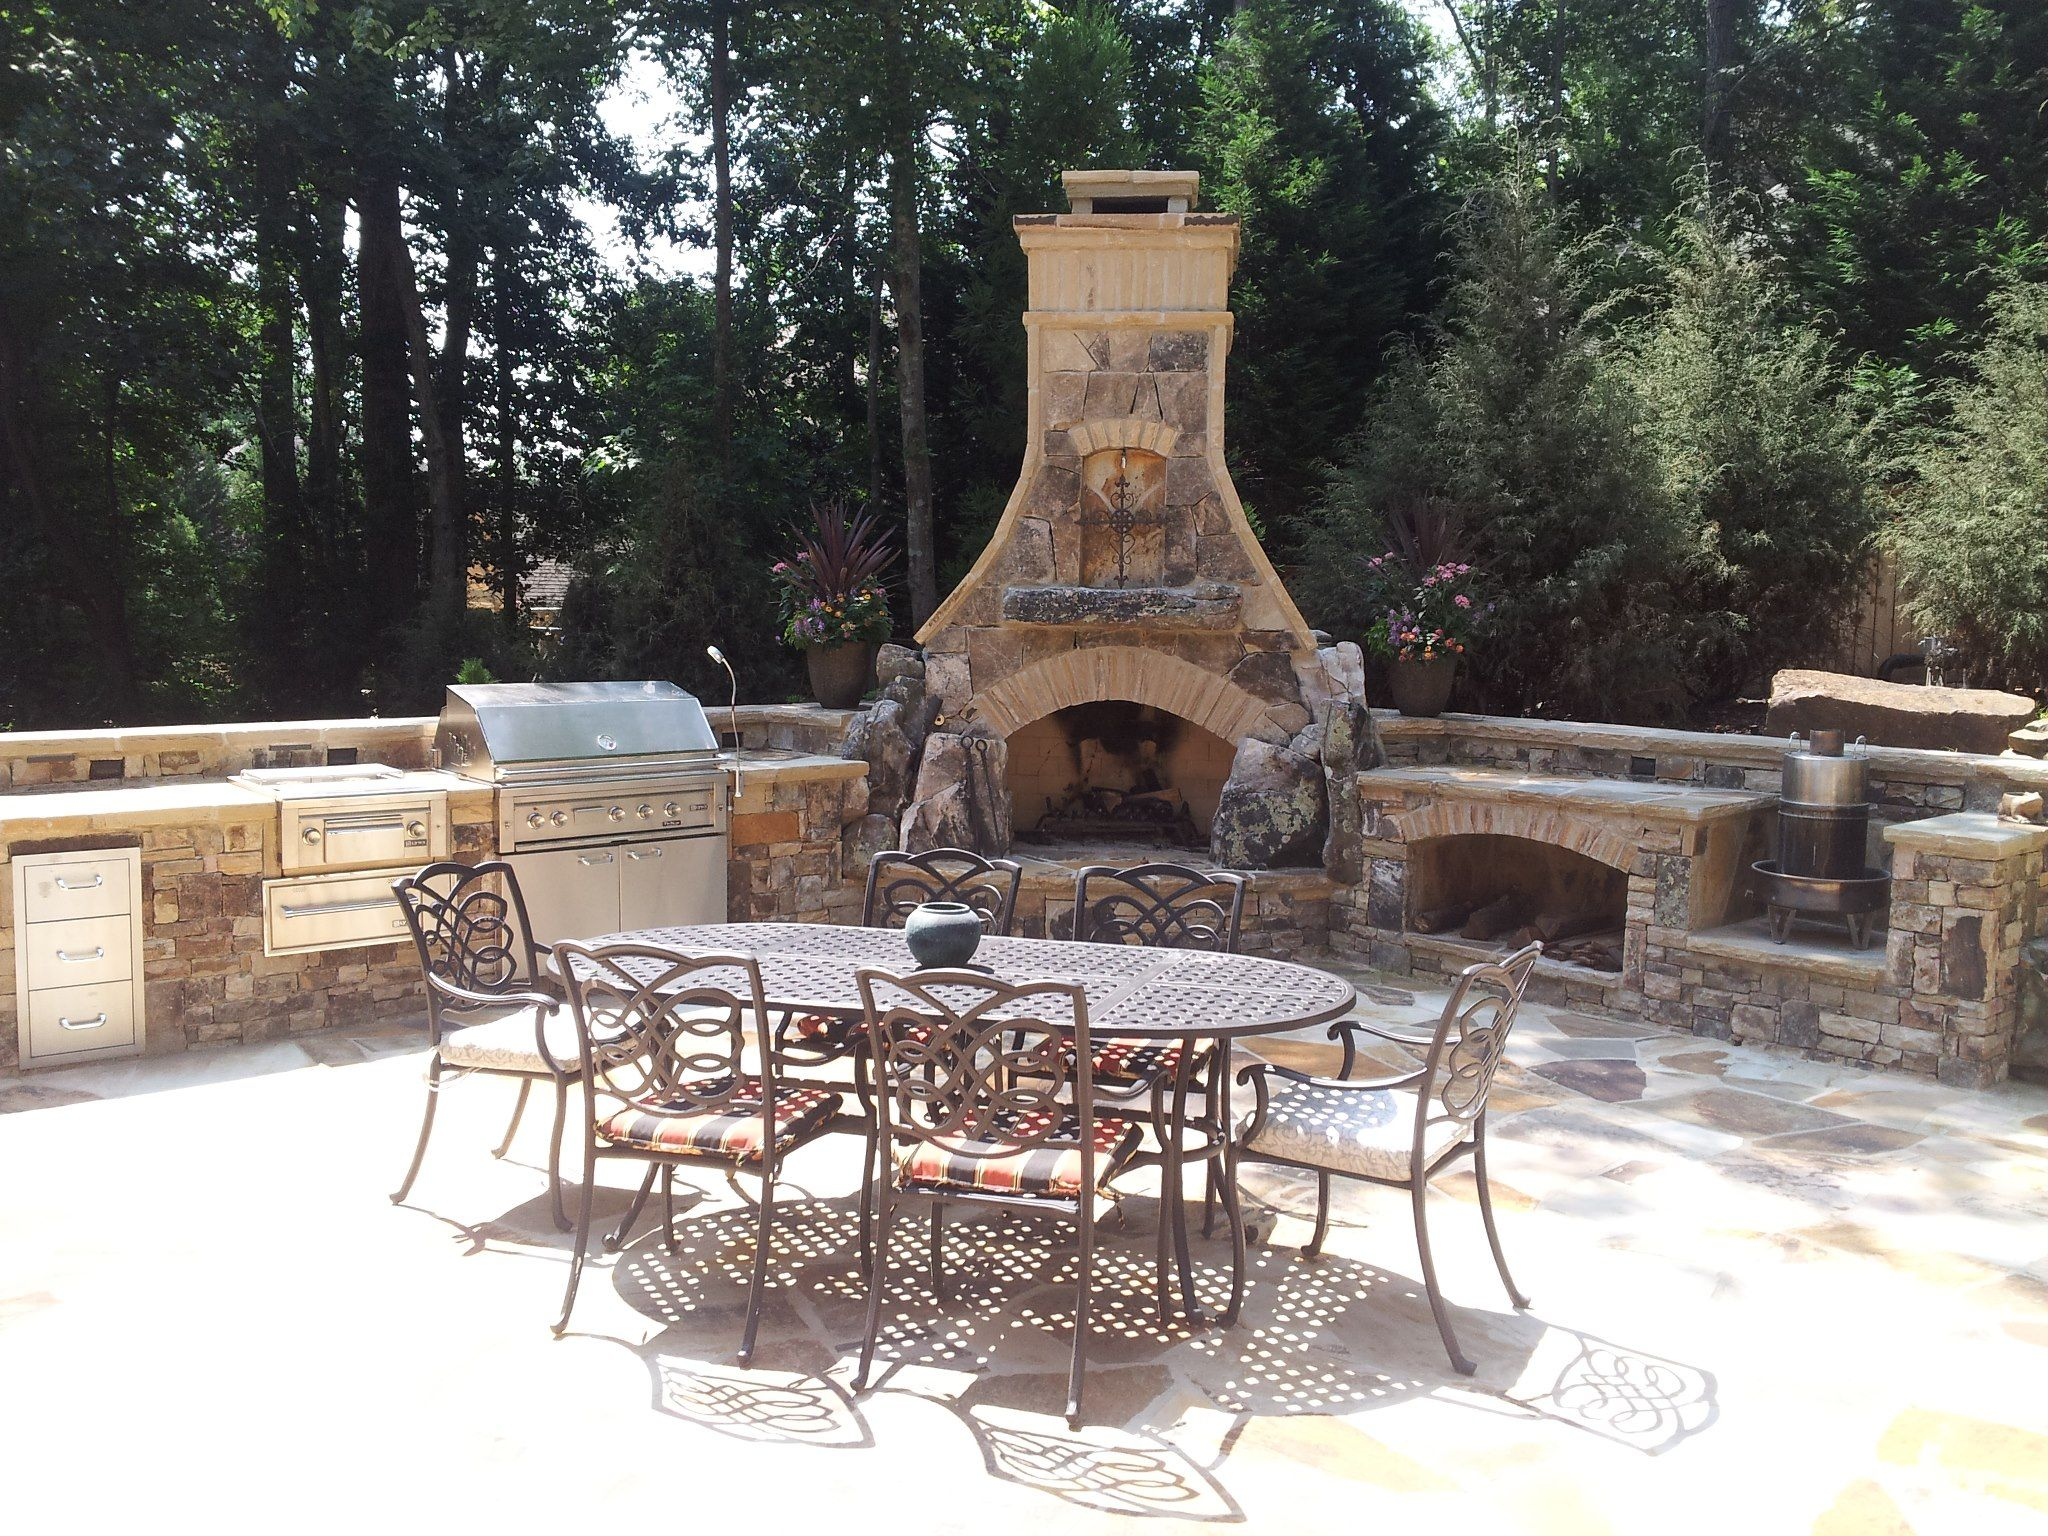 Pin by Elite Landscape Services on Outdoor Retreats ... on Elite Landscape And Outdoor Living id=99136